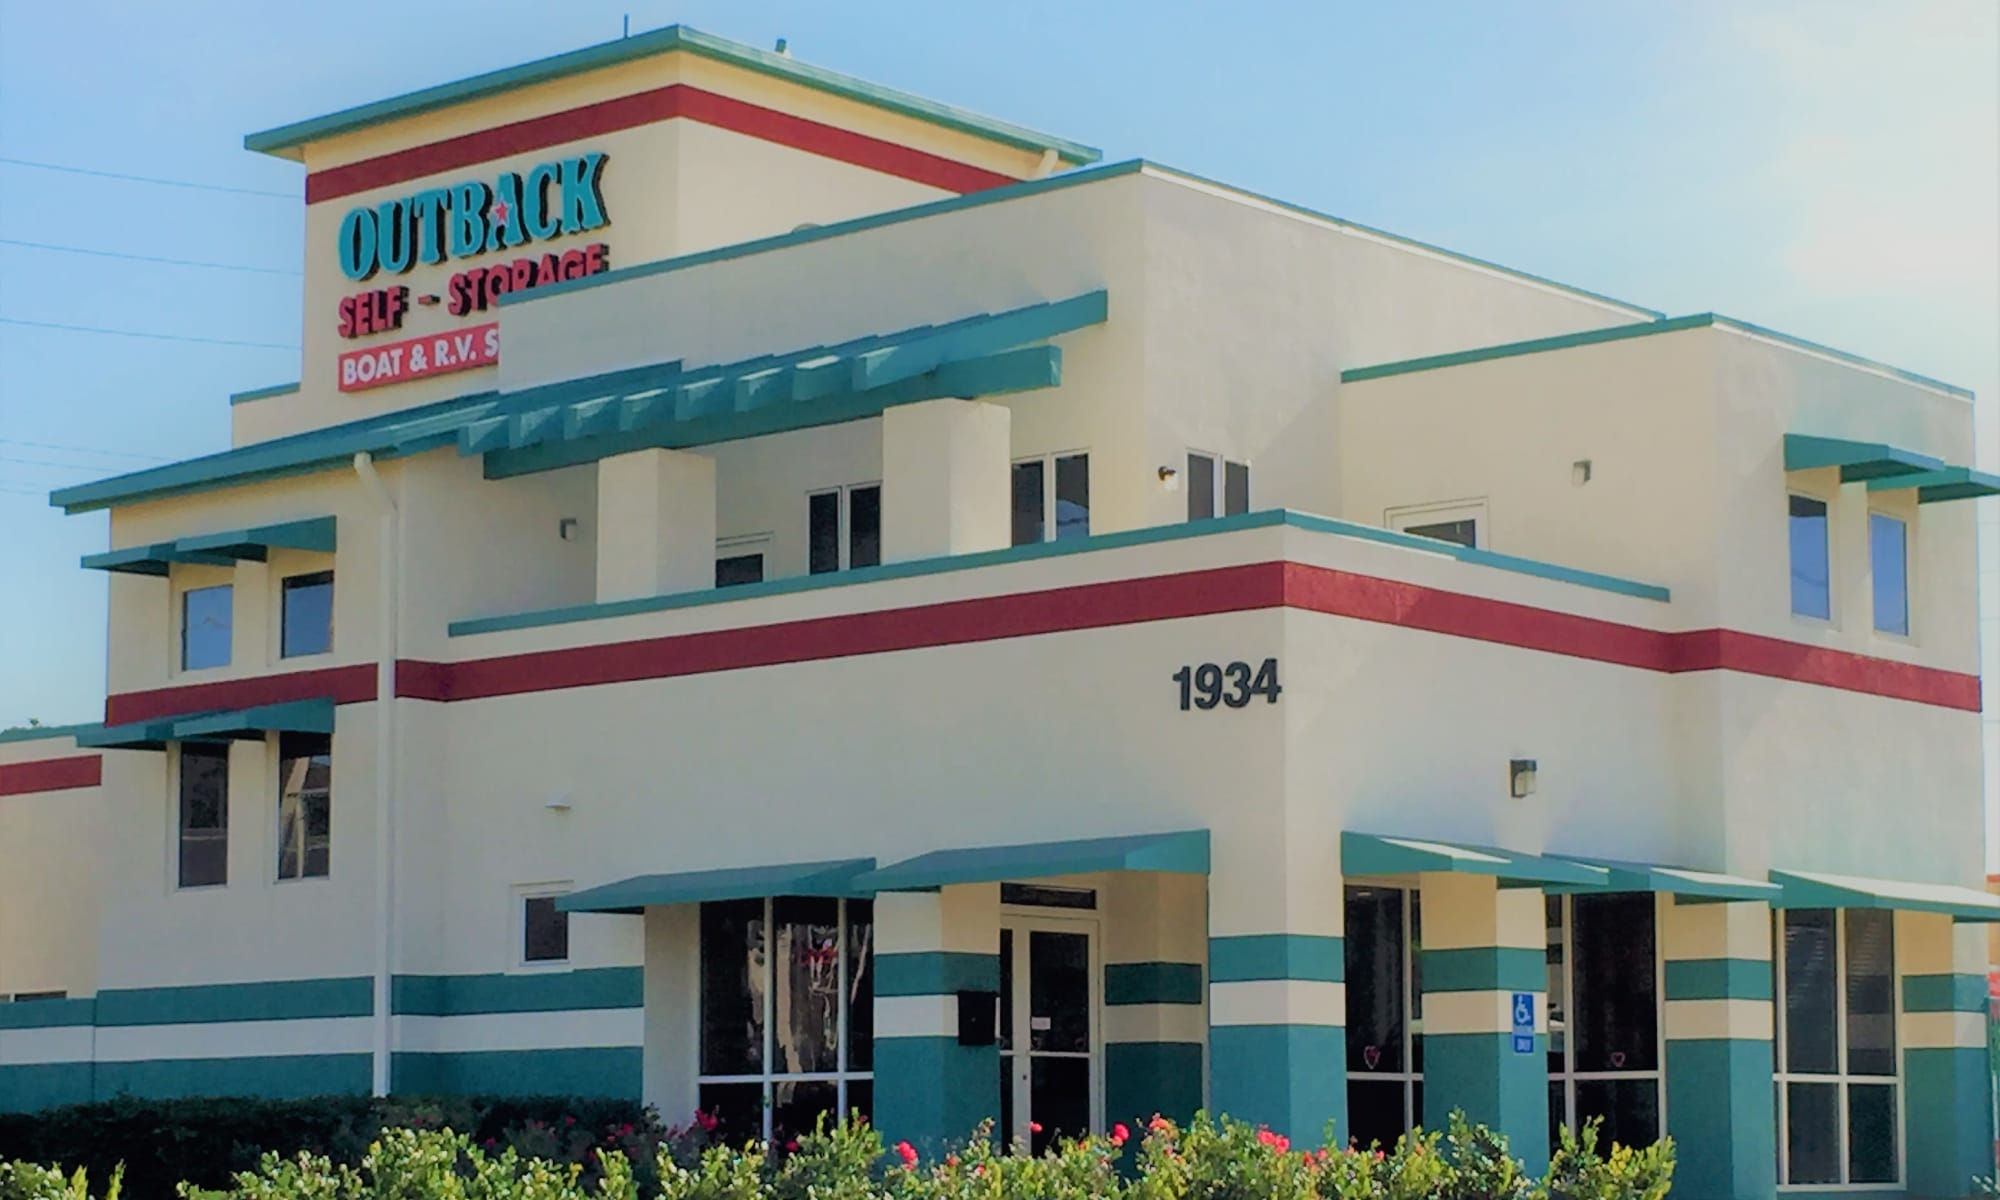 Self storage in Orange CA